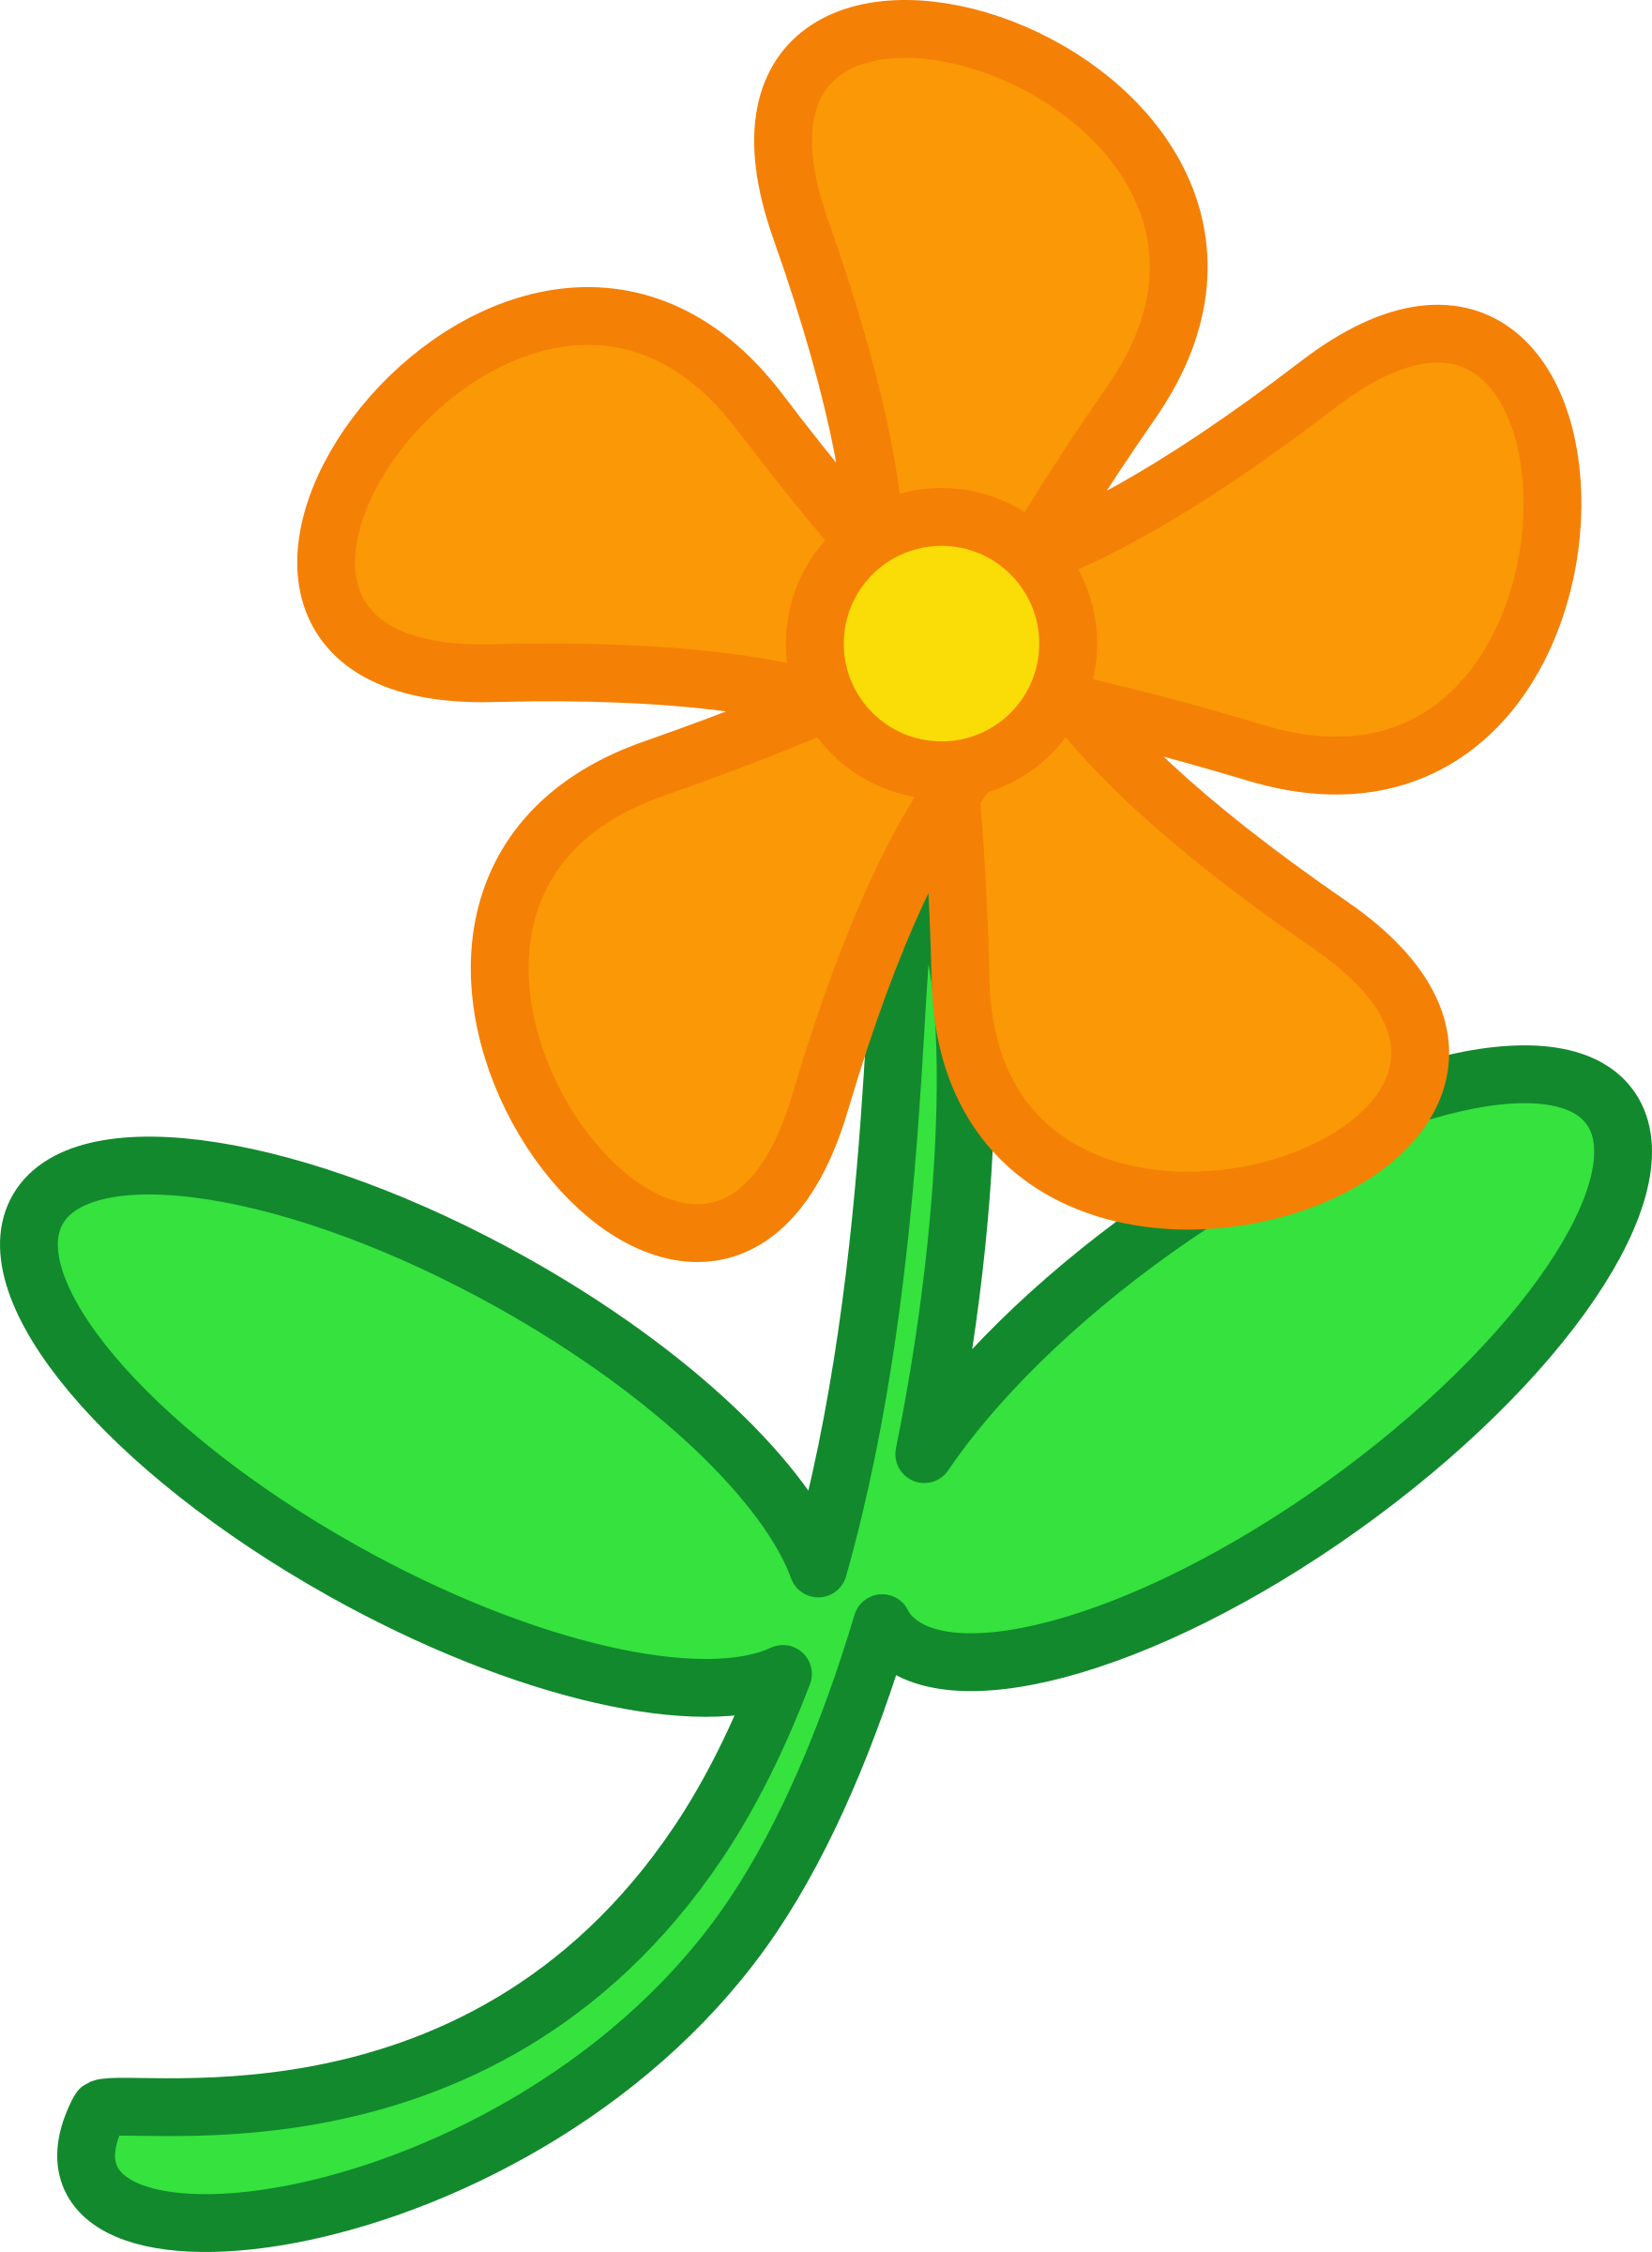 Flower animation clipart clipart freeuse download Clipart - Flower clipart freeuse download